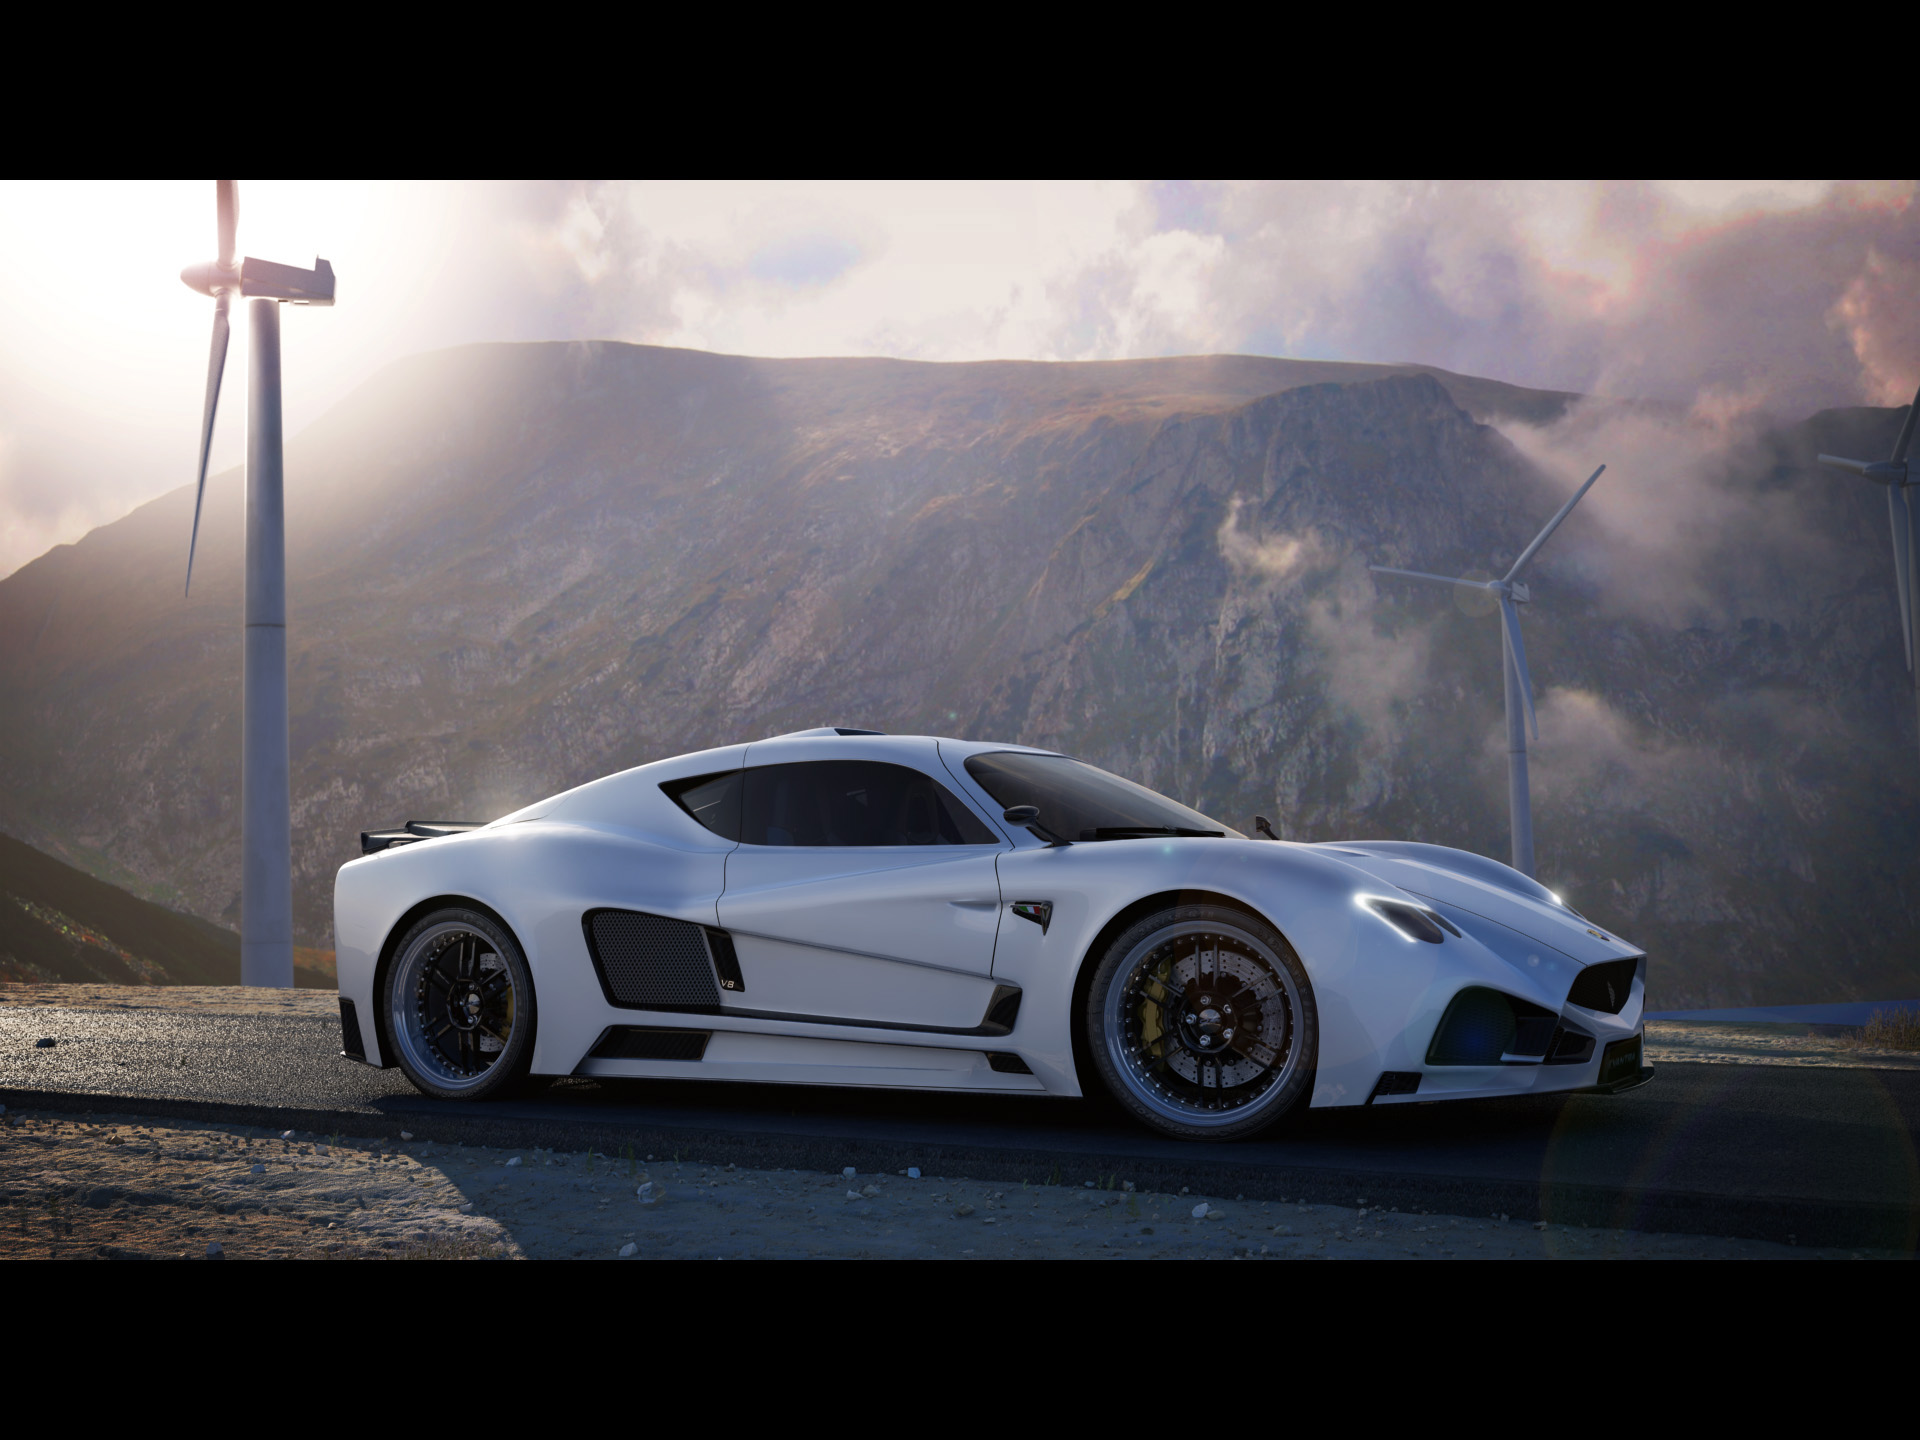 Mazzanti Evantra V8 2012 supercars exotic wallpaper 1920x1440 1920x1440